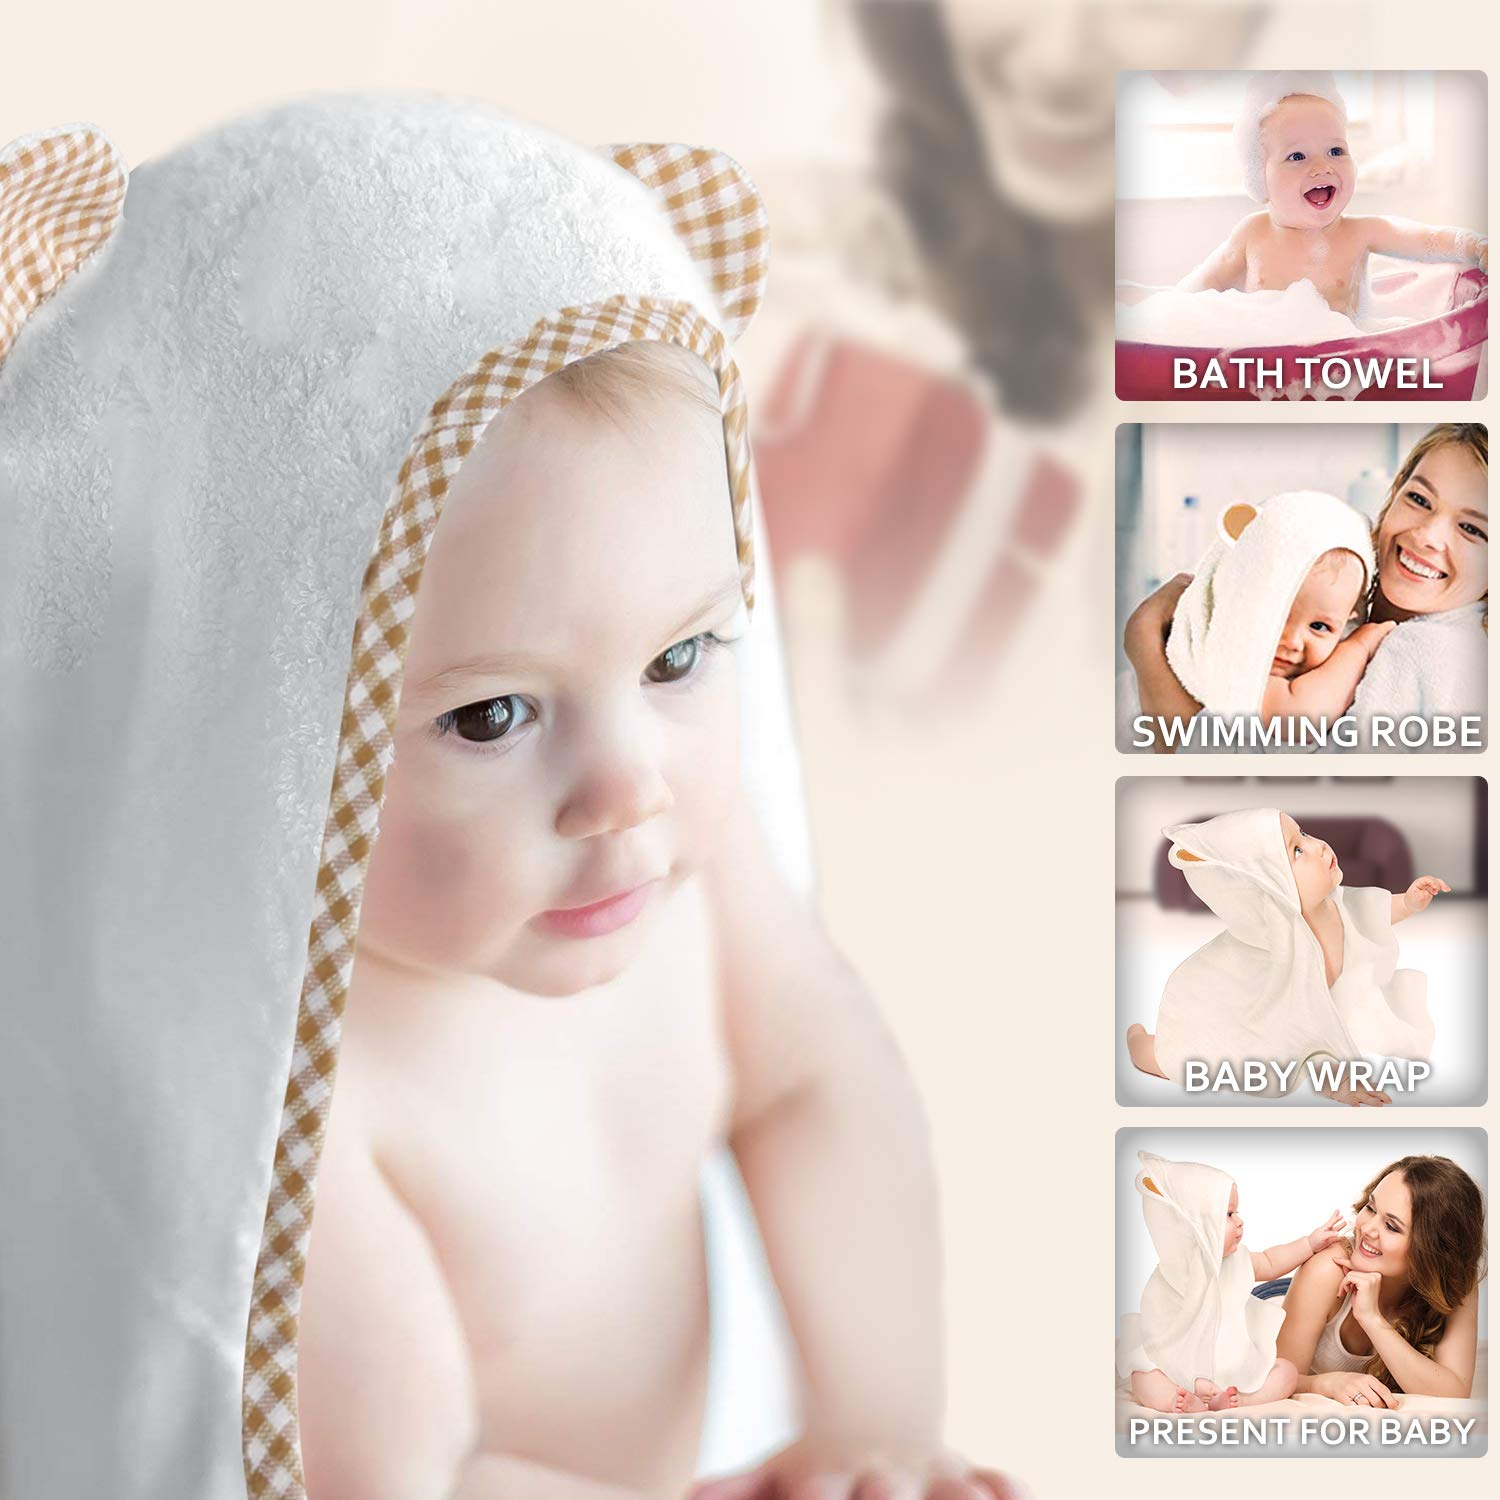 Hooded Baby Towel-Orthland Ultra Soft Baby Towels Antibacterial and Hypoallergenic Organic Bamboo Bath Wrap with Hood (35x35) for Newborn and Toddler (0-5 Years Boys and Girls) Baby Registry Gift Orthland-Baby Towels